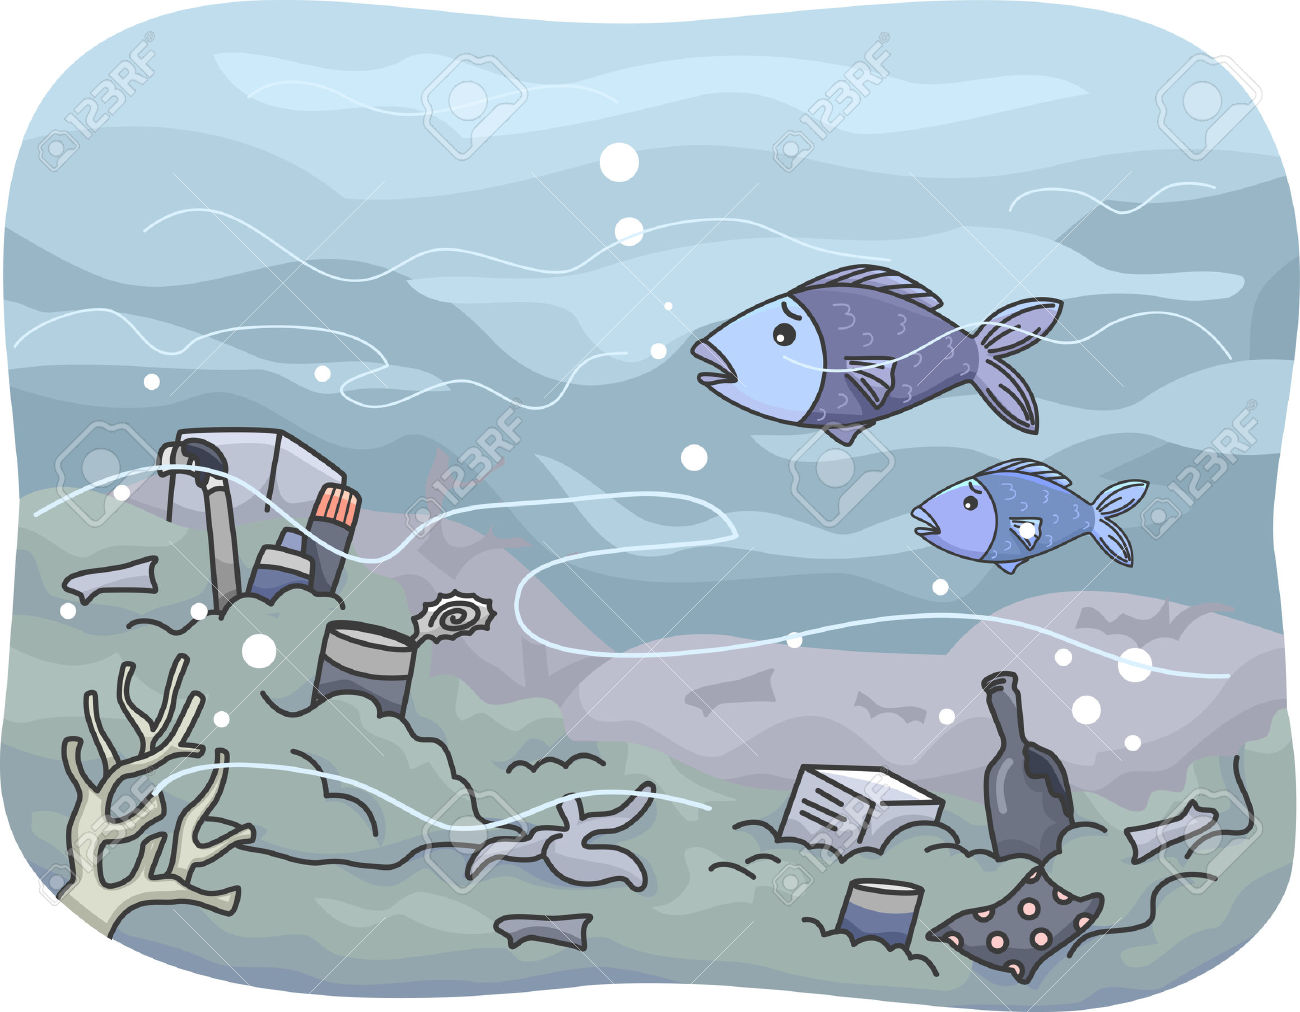 Illustration Featuring Trash That Has Accumulated Under The Sea.